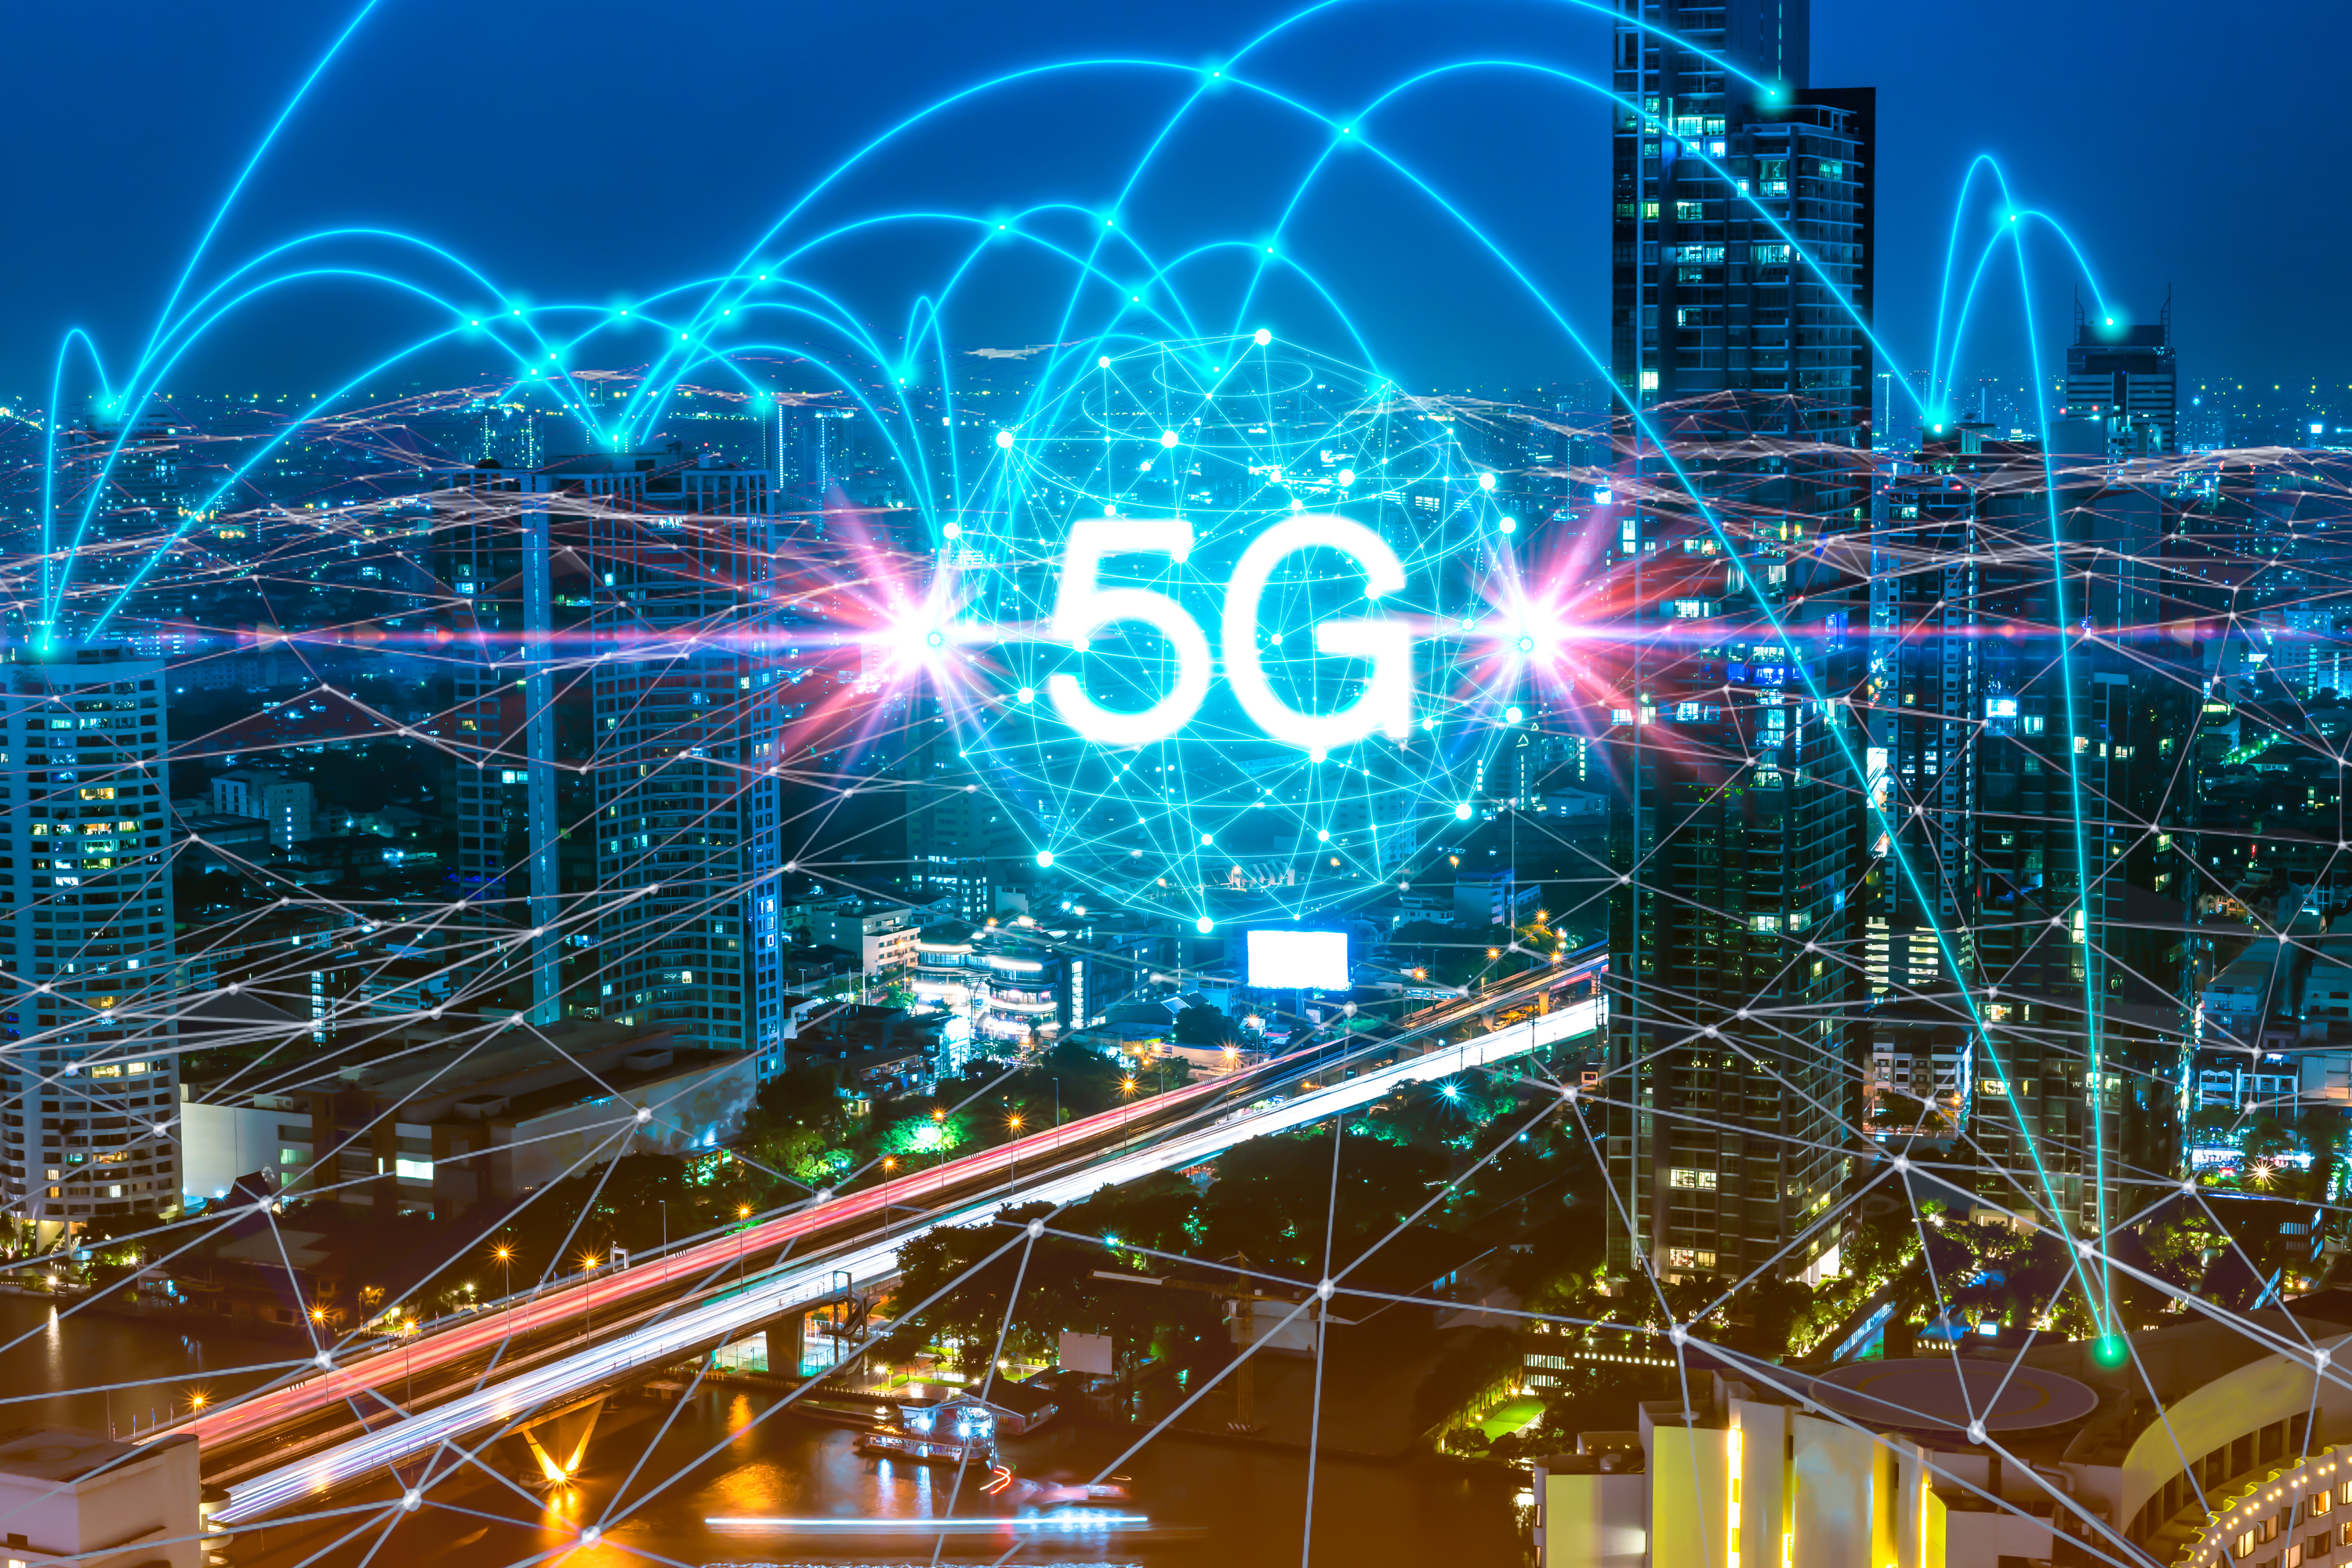 5G is a giant leap for mankind ... and for media, too